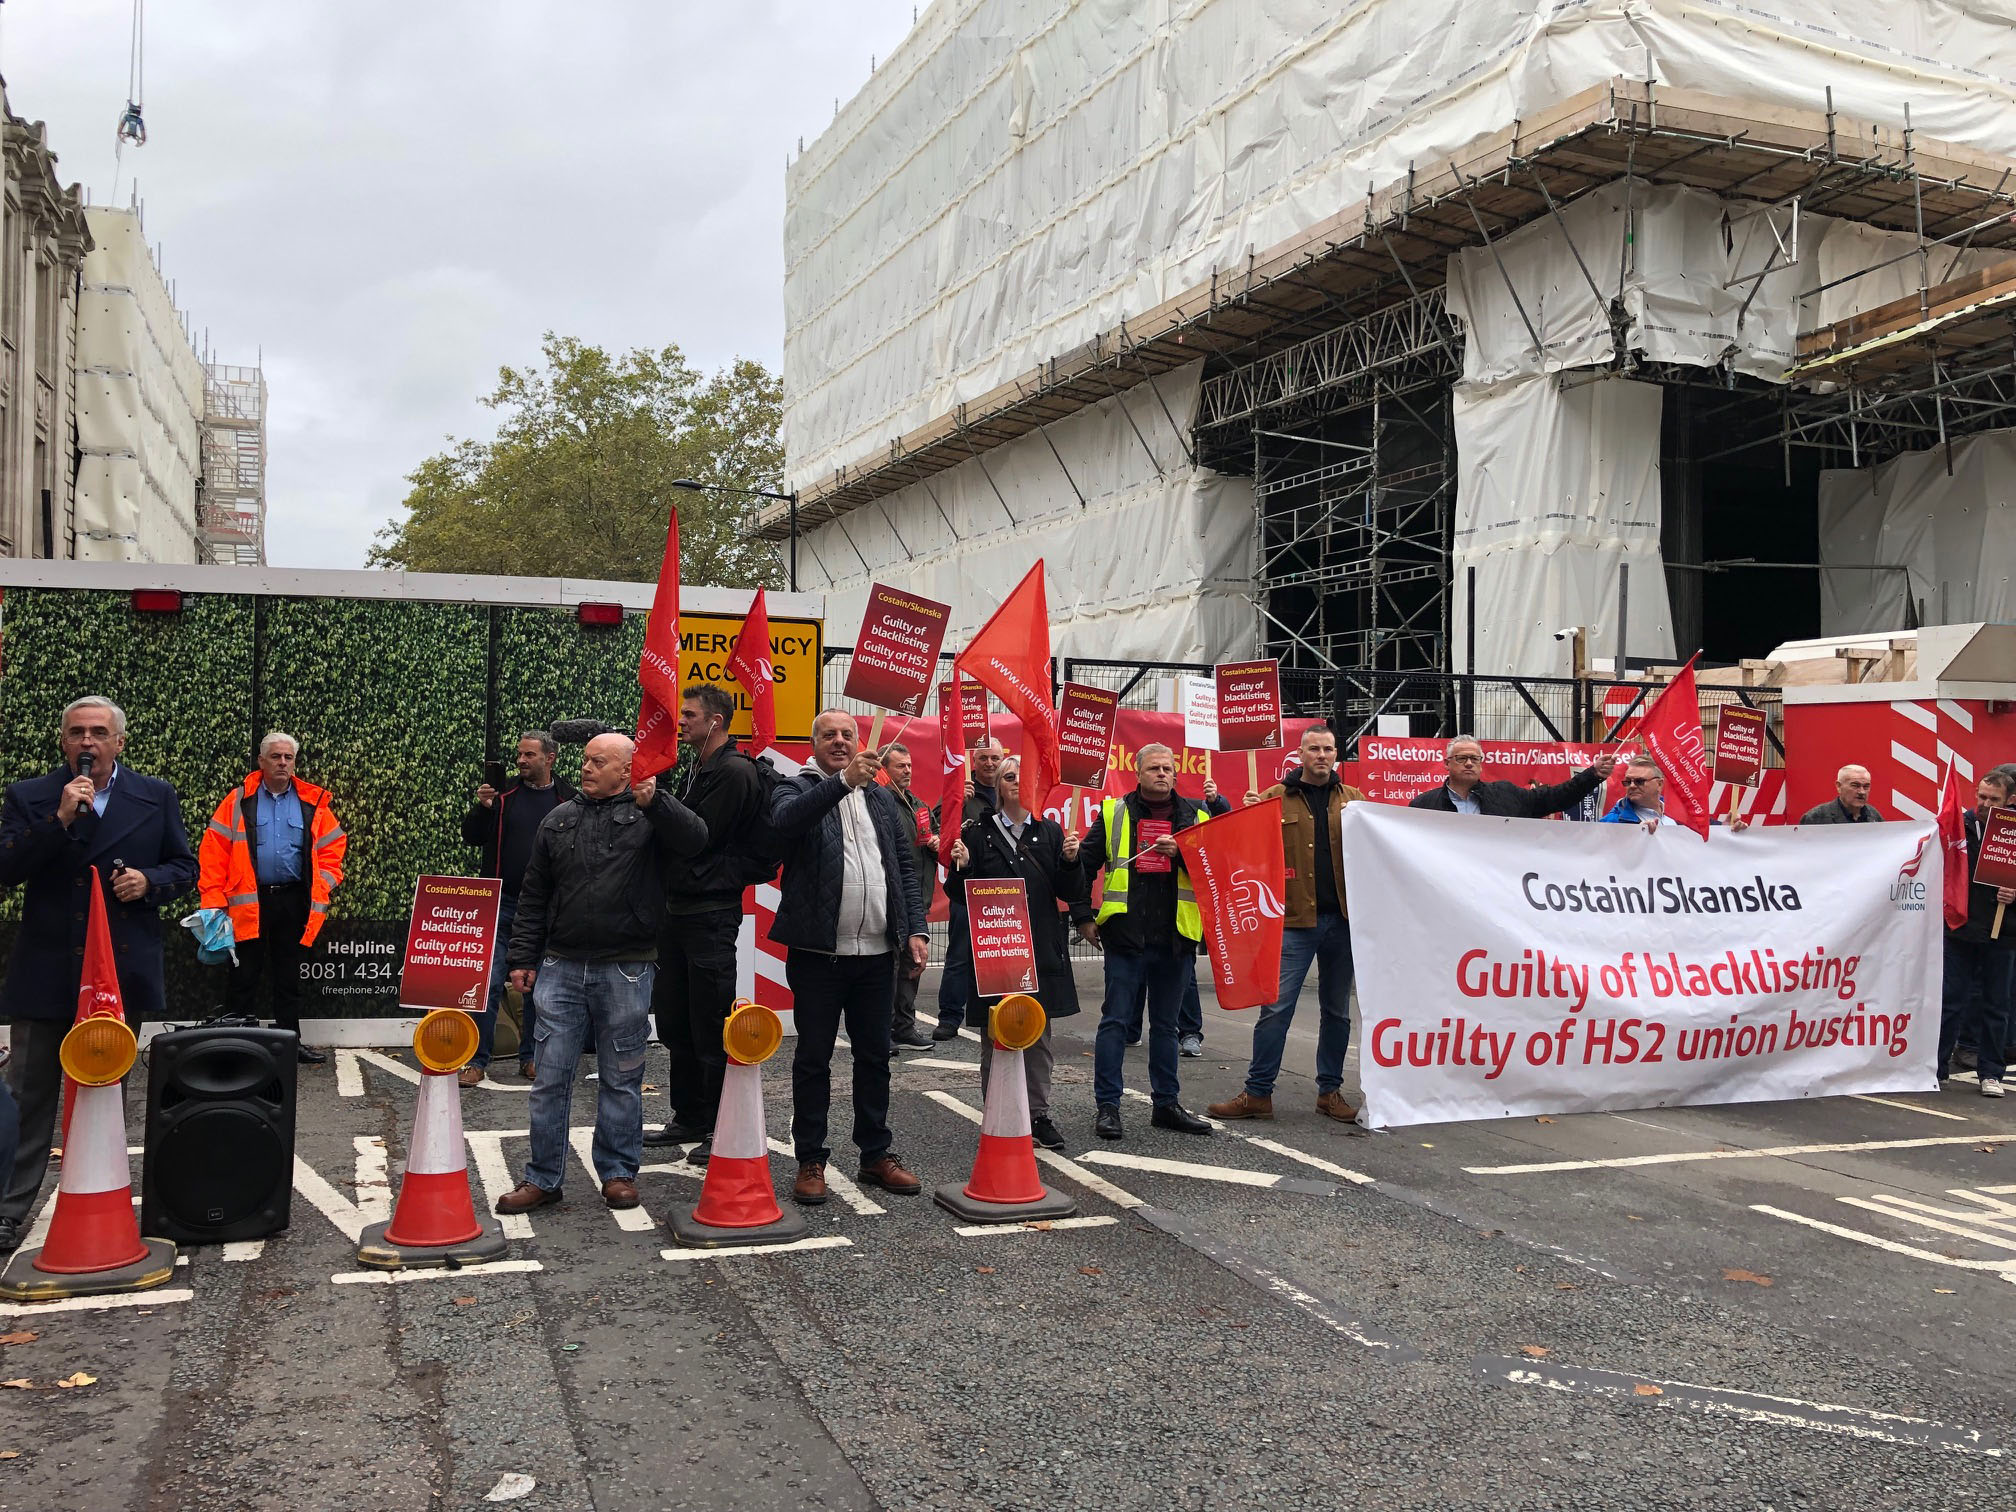 Unite picket of Costain Skanska